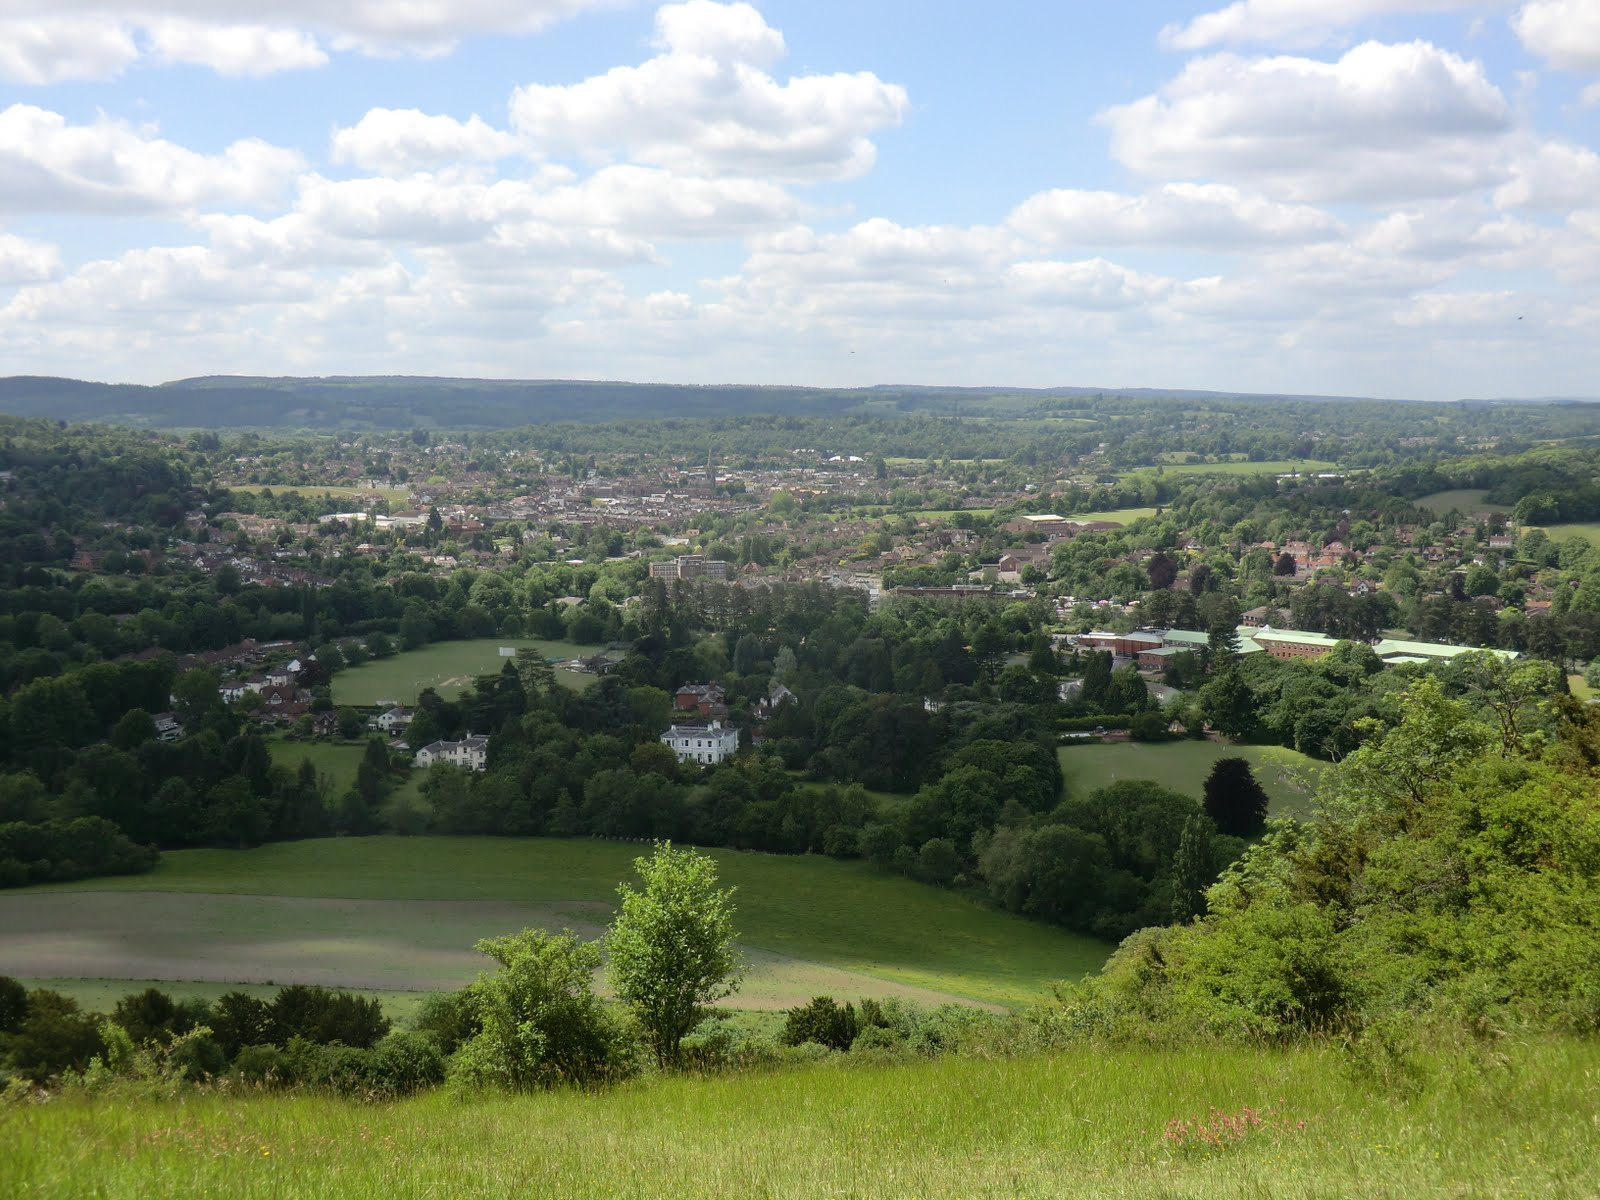 CIMG8431 View of Dorking from Box Hill